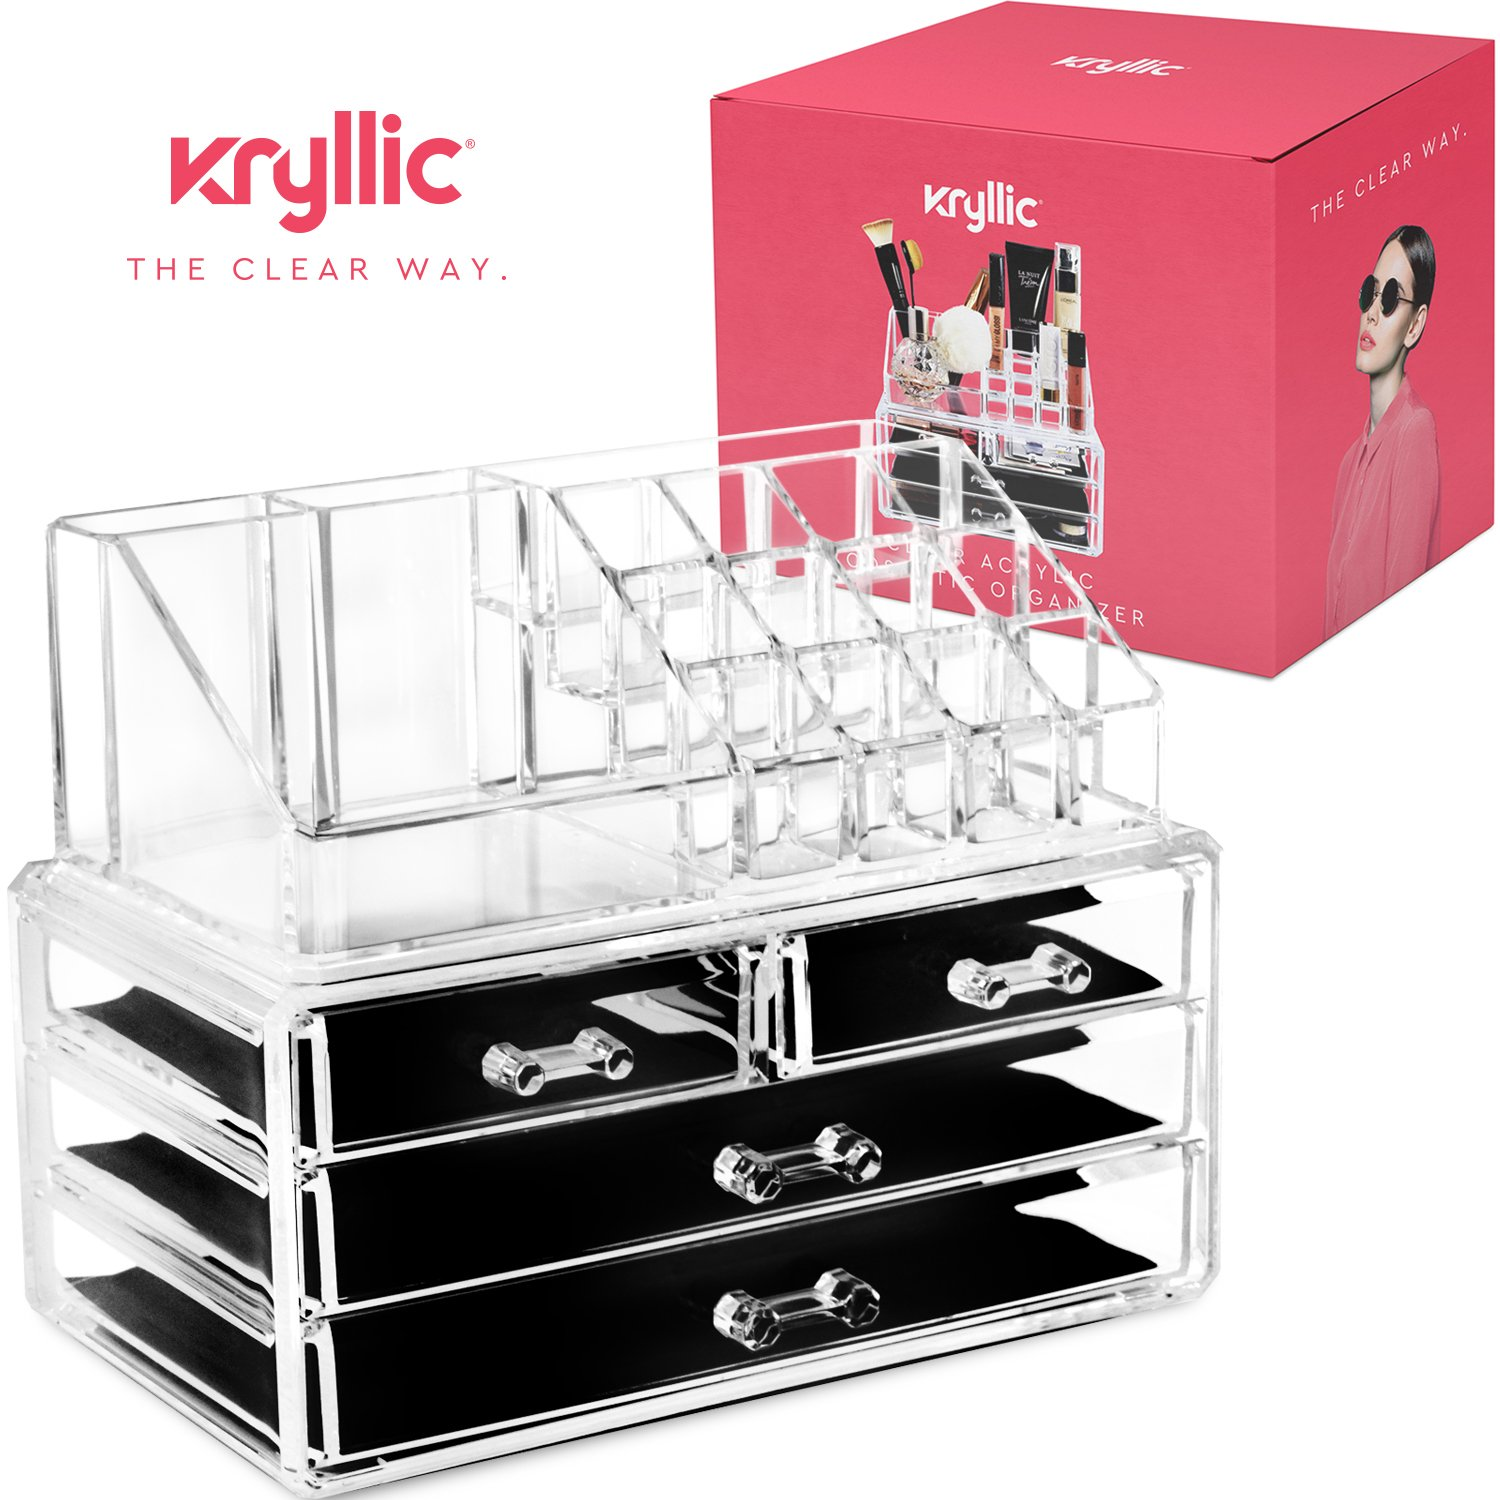 Acrylic Makeup jewelry cosmetic organizer - Set of 4 Extra Deep Drawers That Open & close Easily With Seprate Stackable lipstick & nailpolish Holder &made With the Highest quality Strong Thick Acrylic